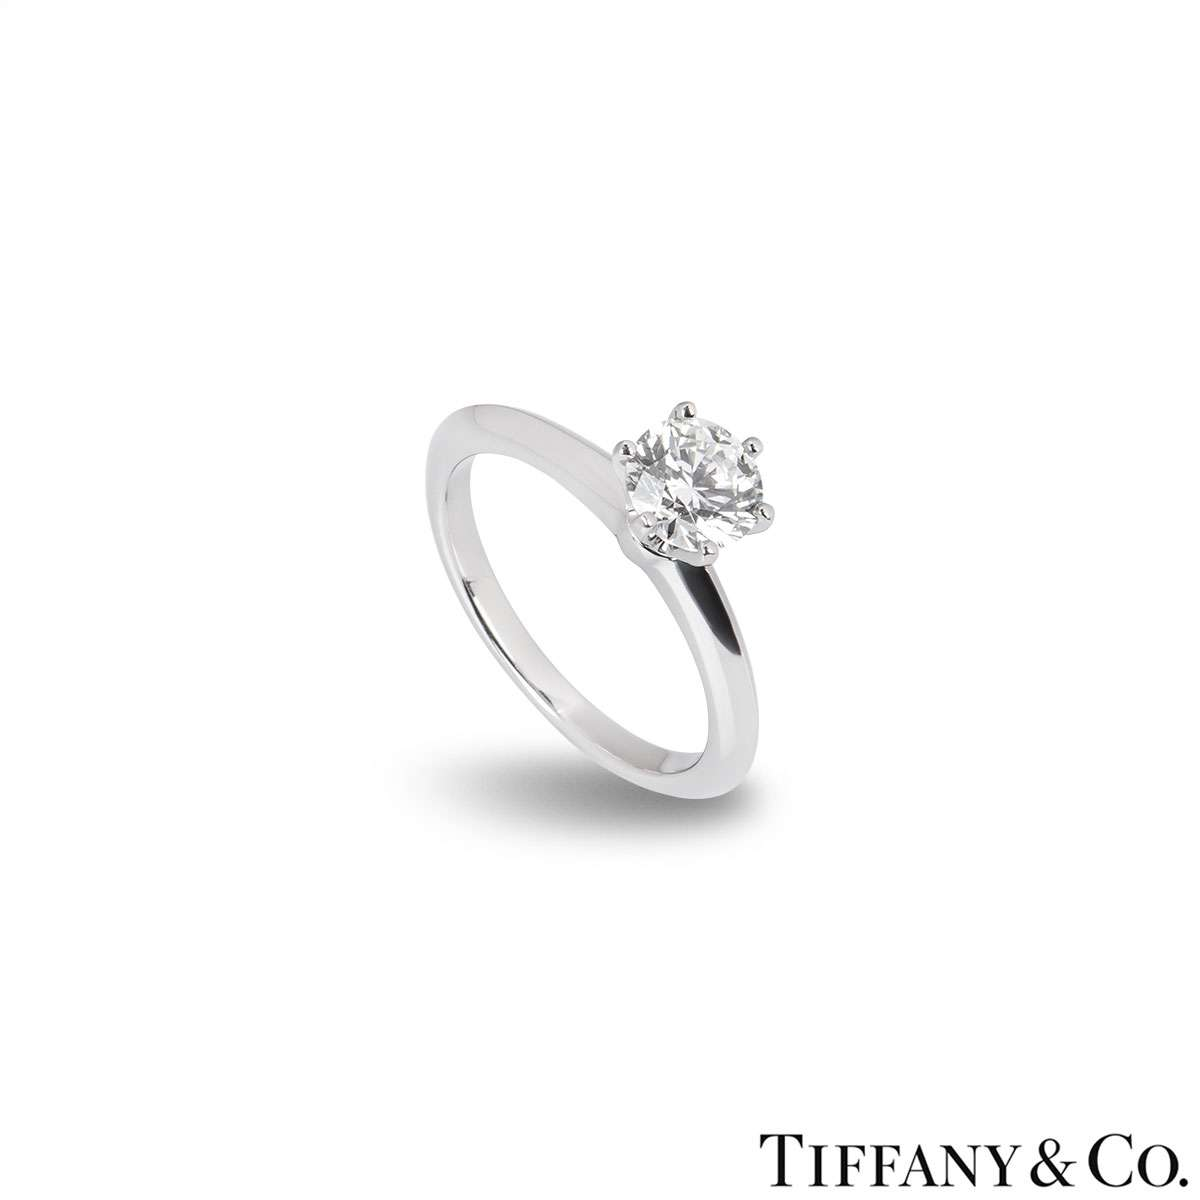 Tiffany & Co. Round Brilliant Cut Diamond Ring 0.86ct H/VVS1 XXX